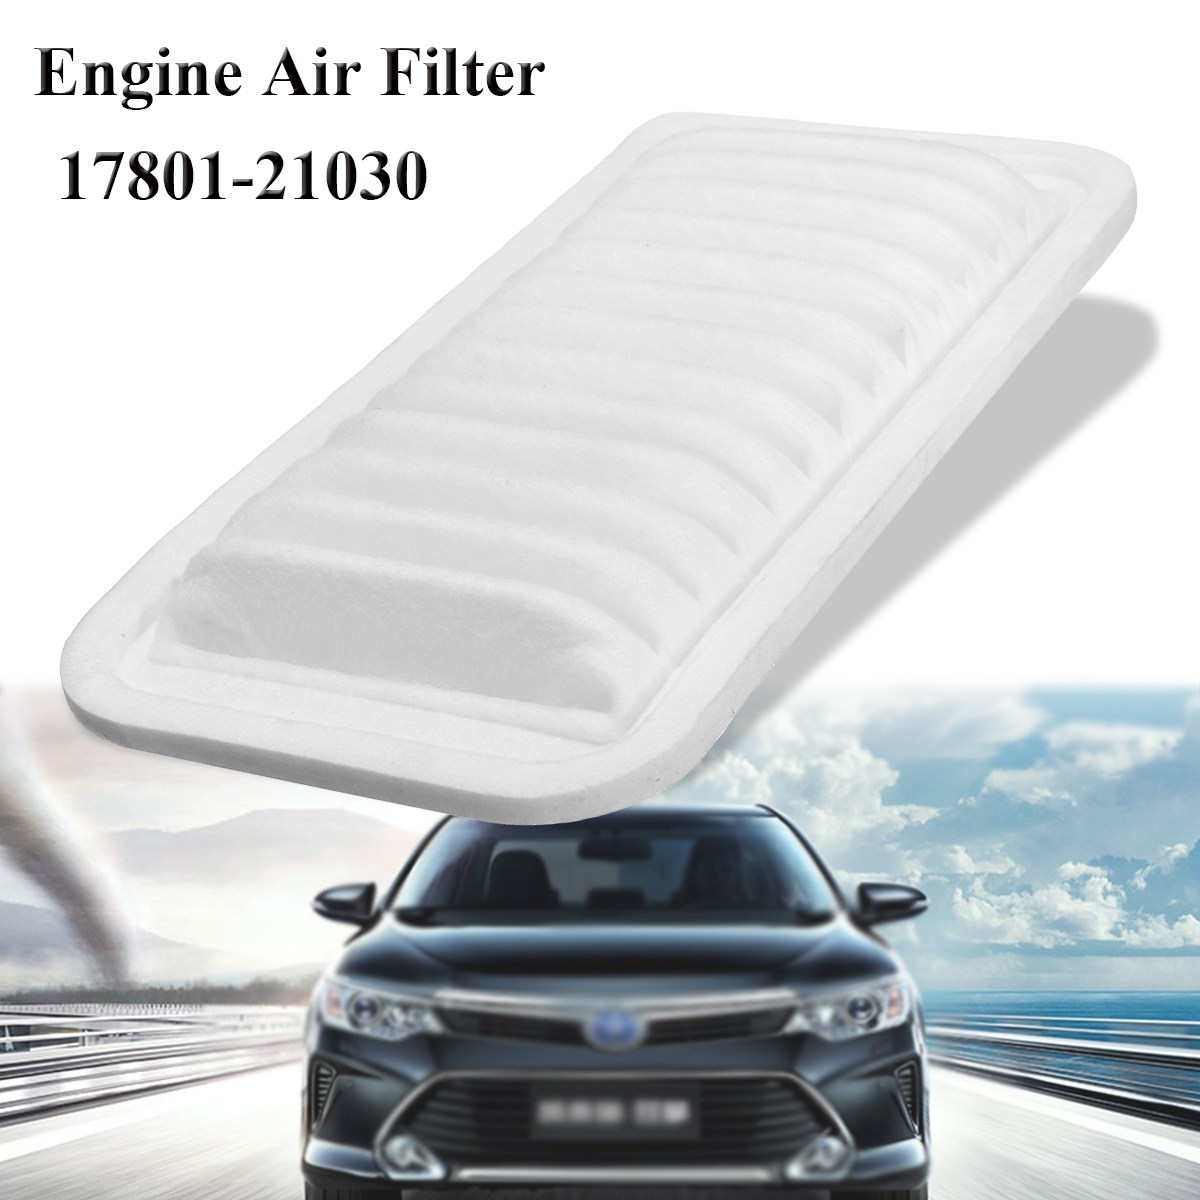 Engine air filter for toyota yaris echo scion xa xb 2000 2005 17801